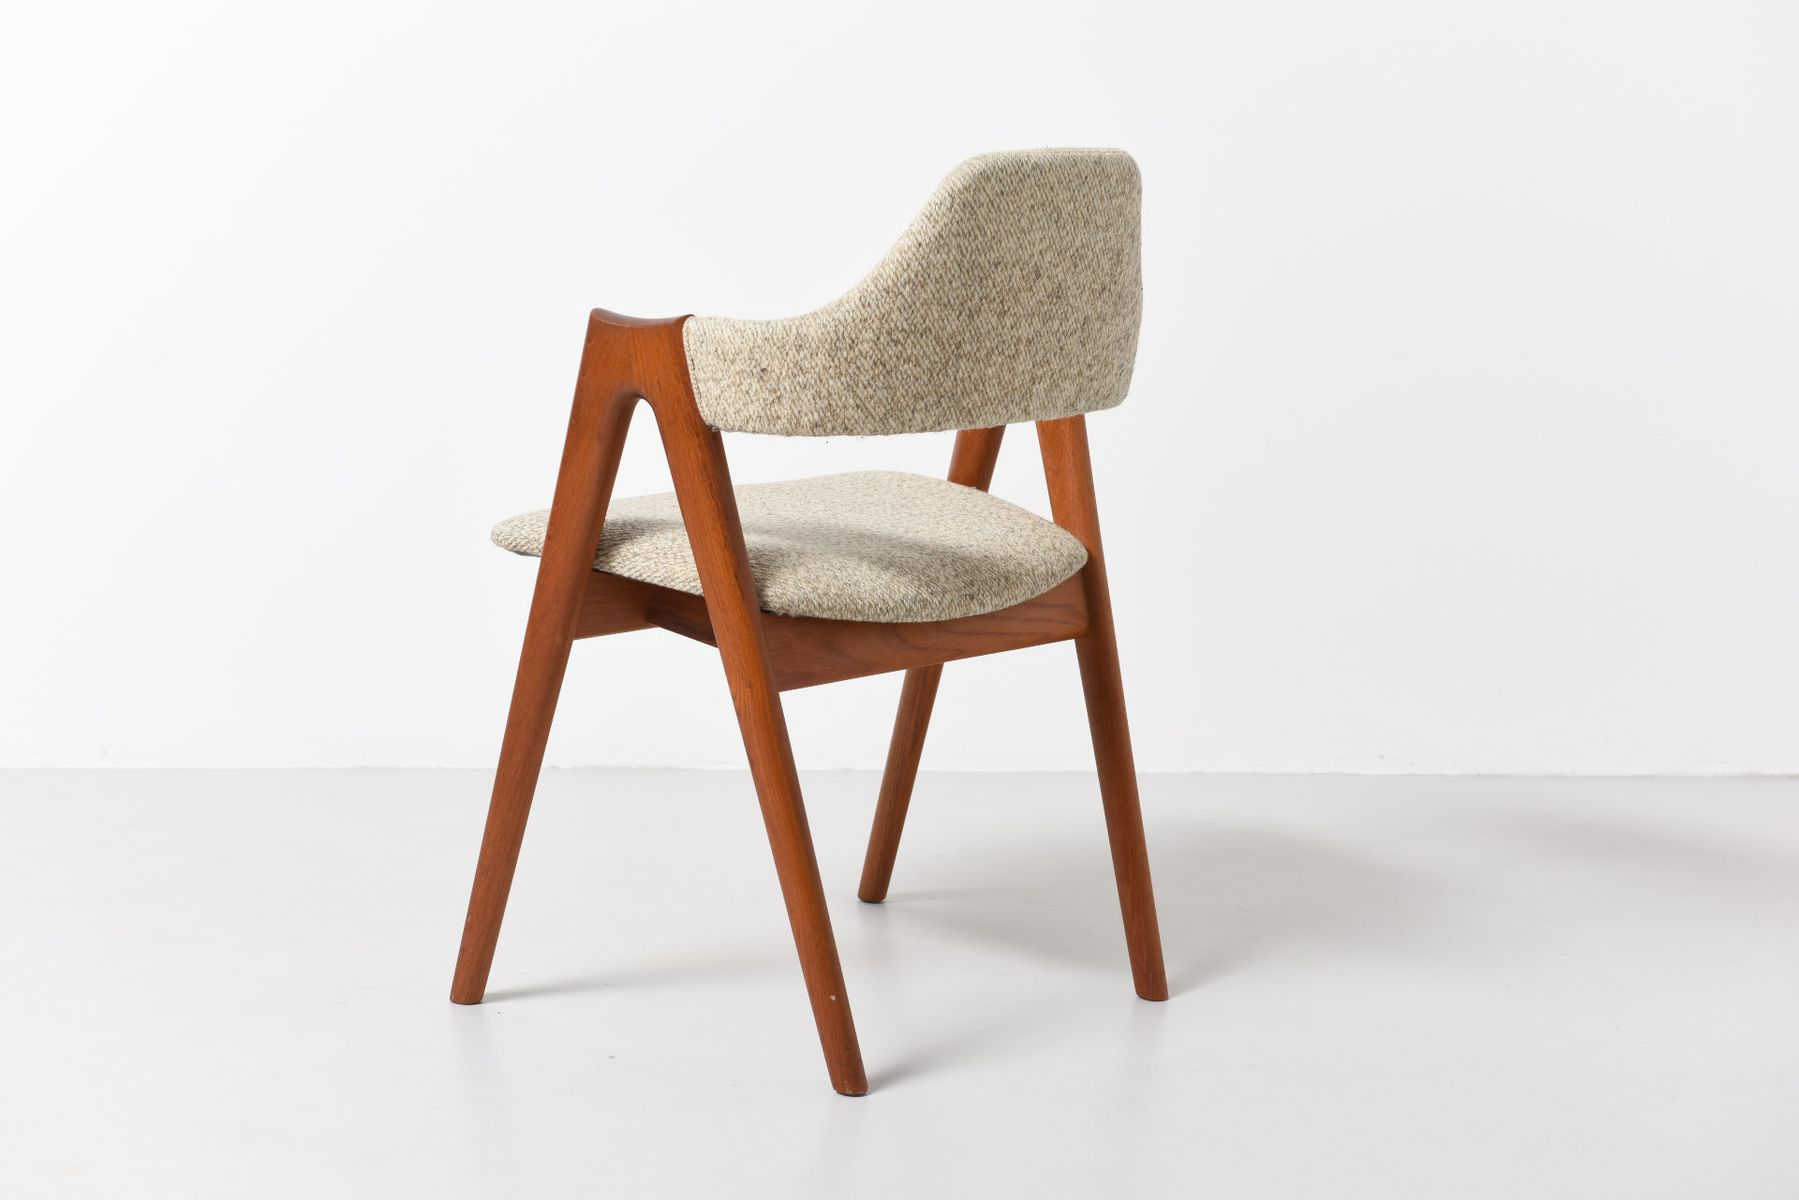 Compass dining chairs by kai kristiansen for sva m bler 1958 set of 4 for sale at pamono - Kai kristiansen chairs ...